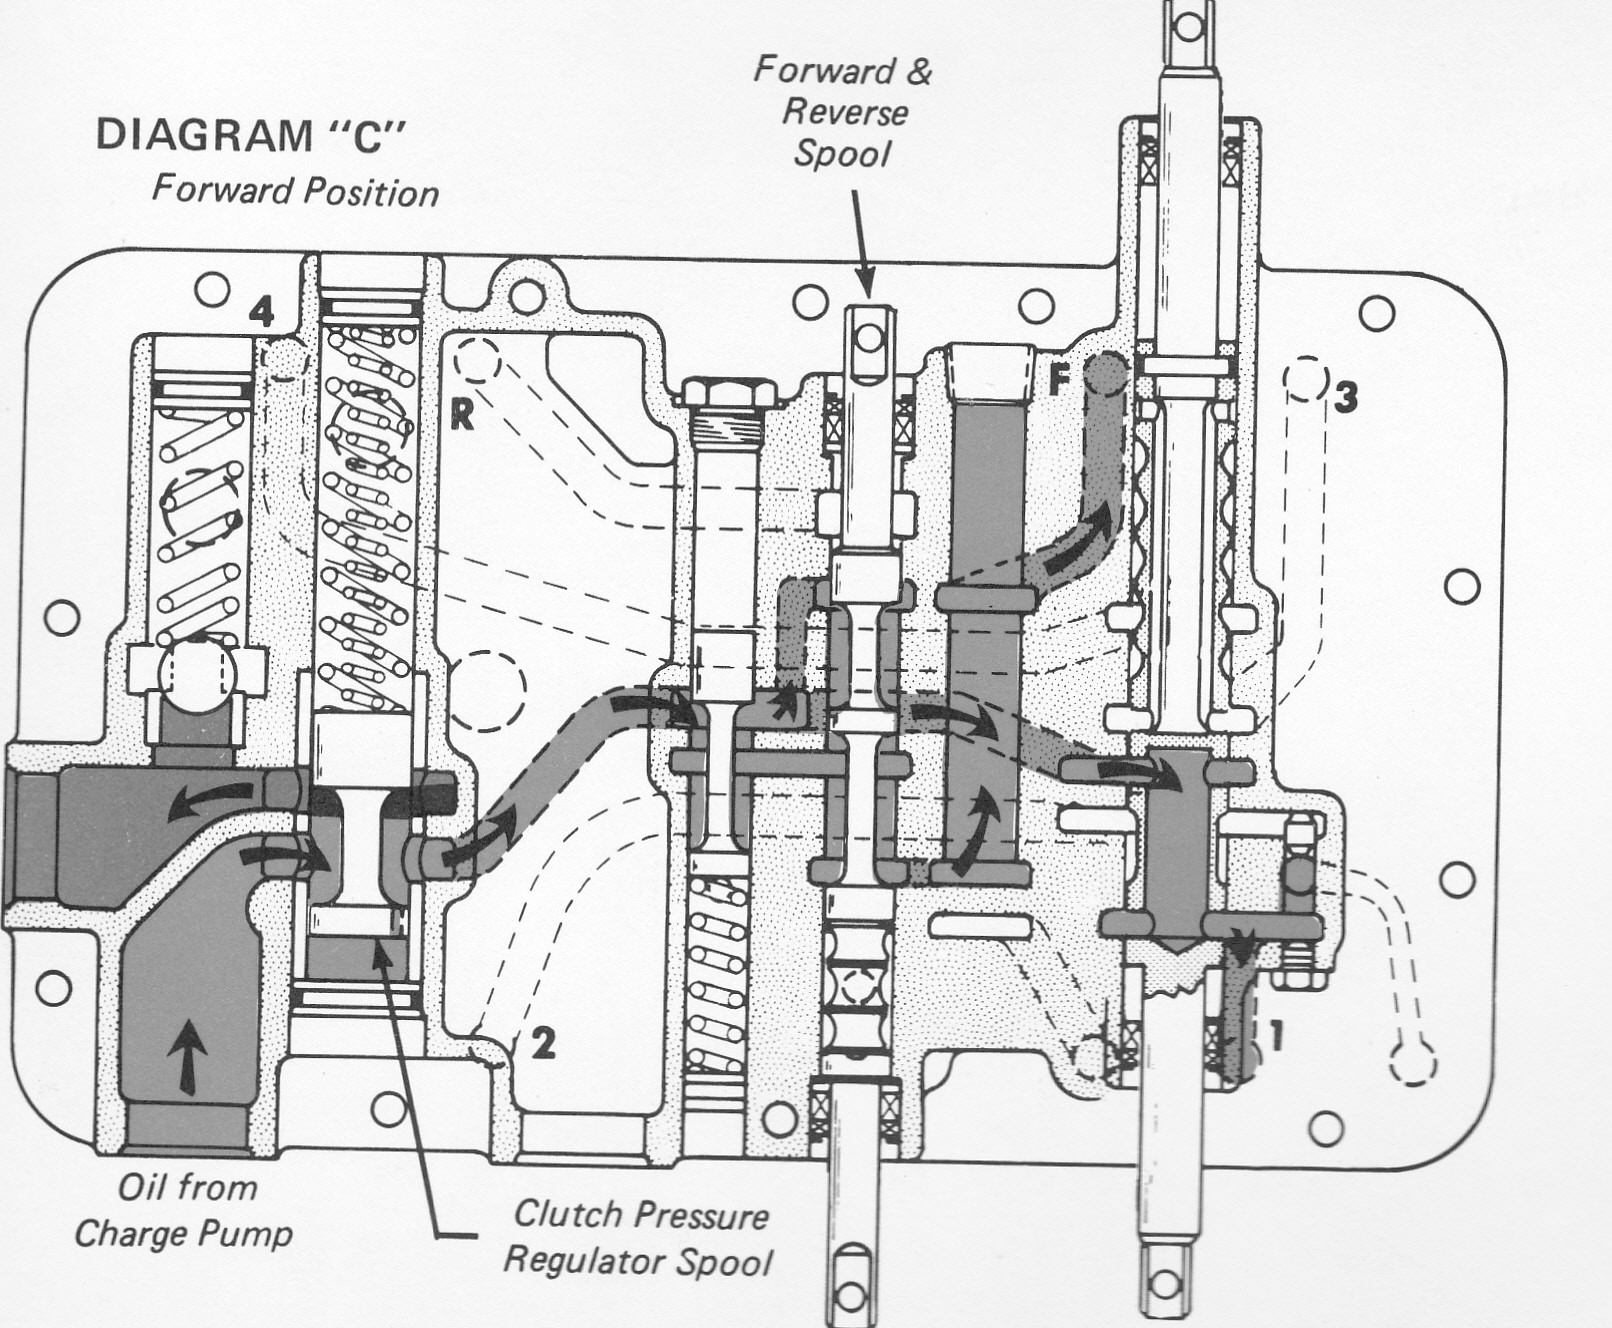 I Have A Michigan 175ad Wheel Loader It Runs Great But Has Little B7000 Kubota Tractor Wiring Diagram Graphic